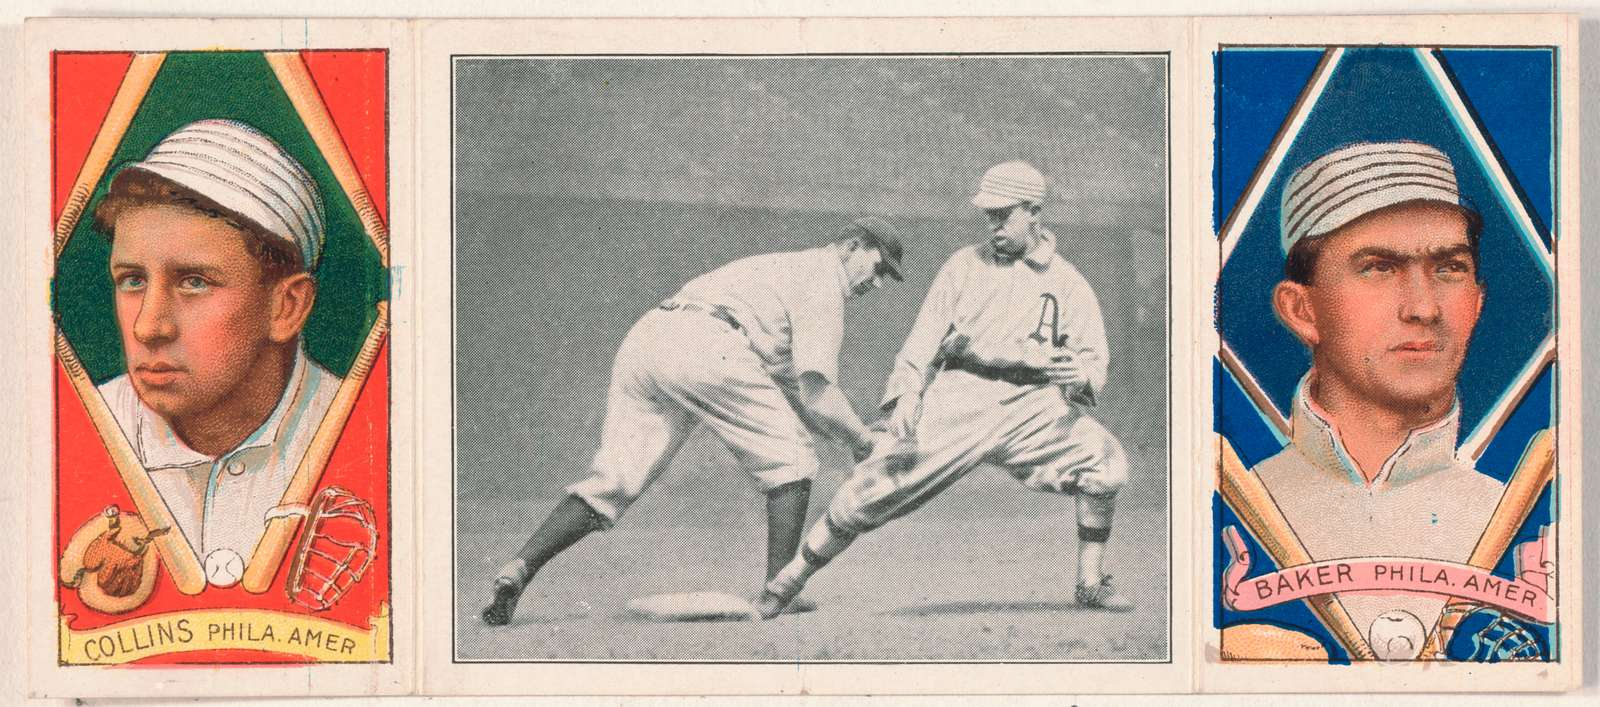 [Edw. T. Collins/Frank Baker, Philadelphia Athletics, baseball card portrait]